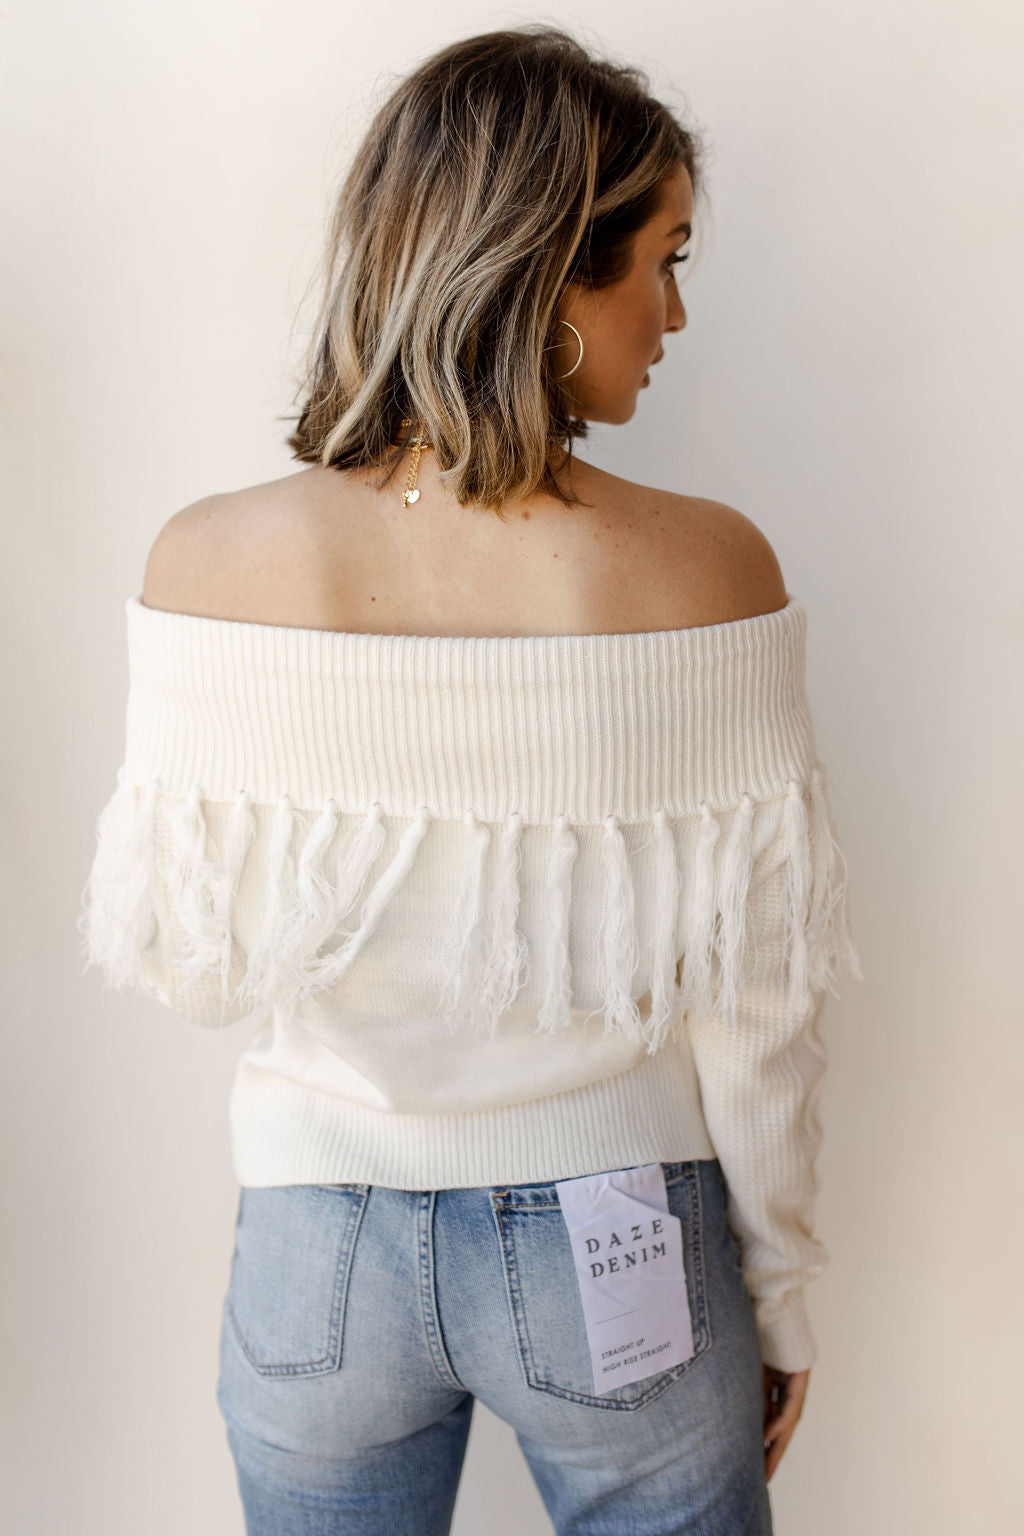 off the shoulder, on the fringe